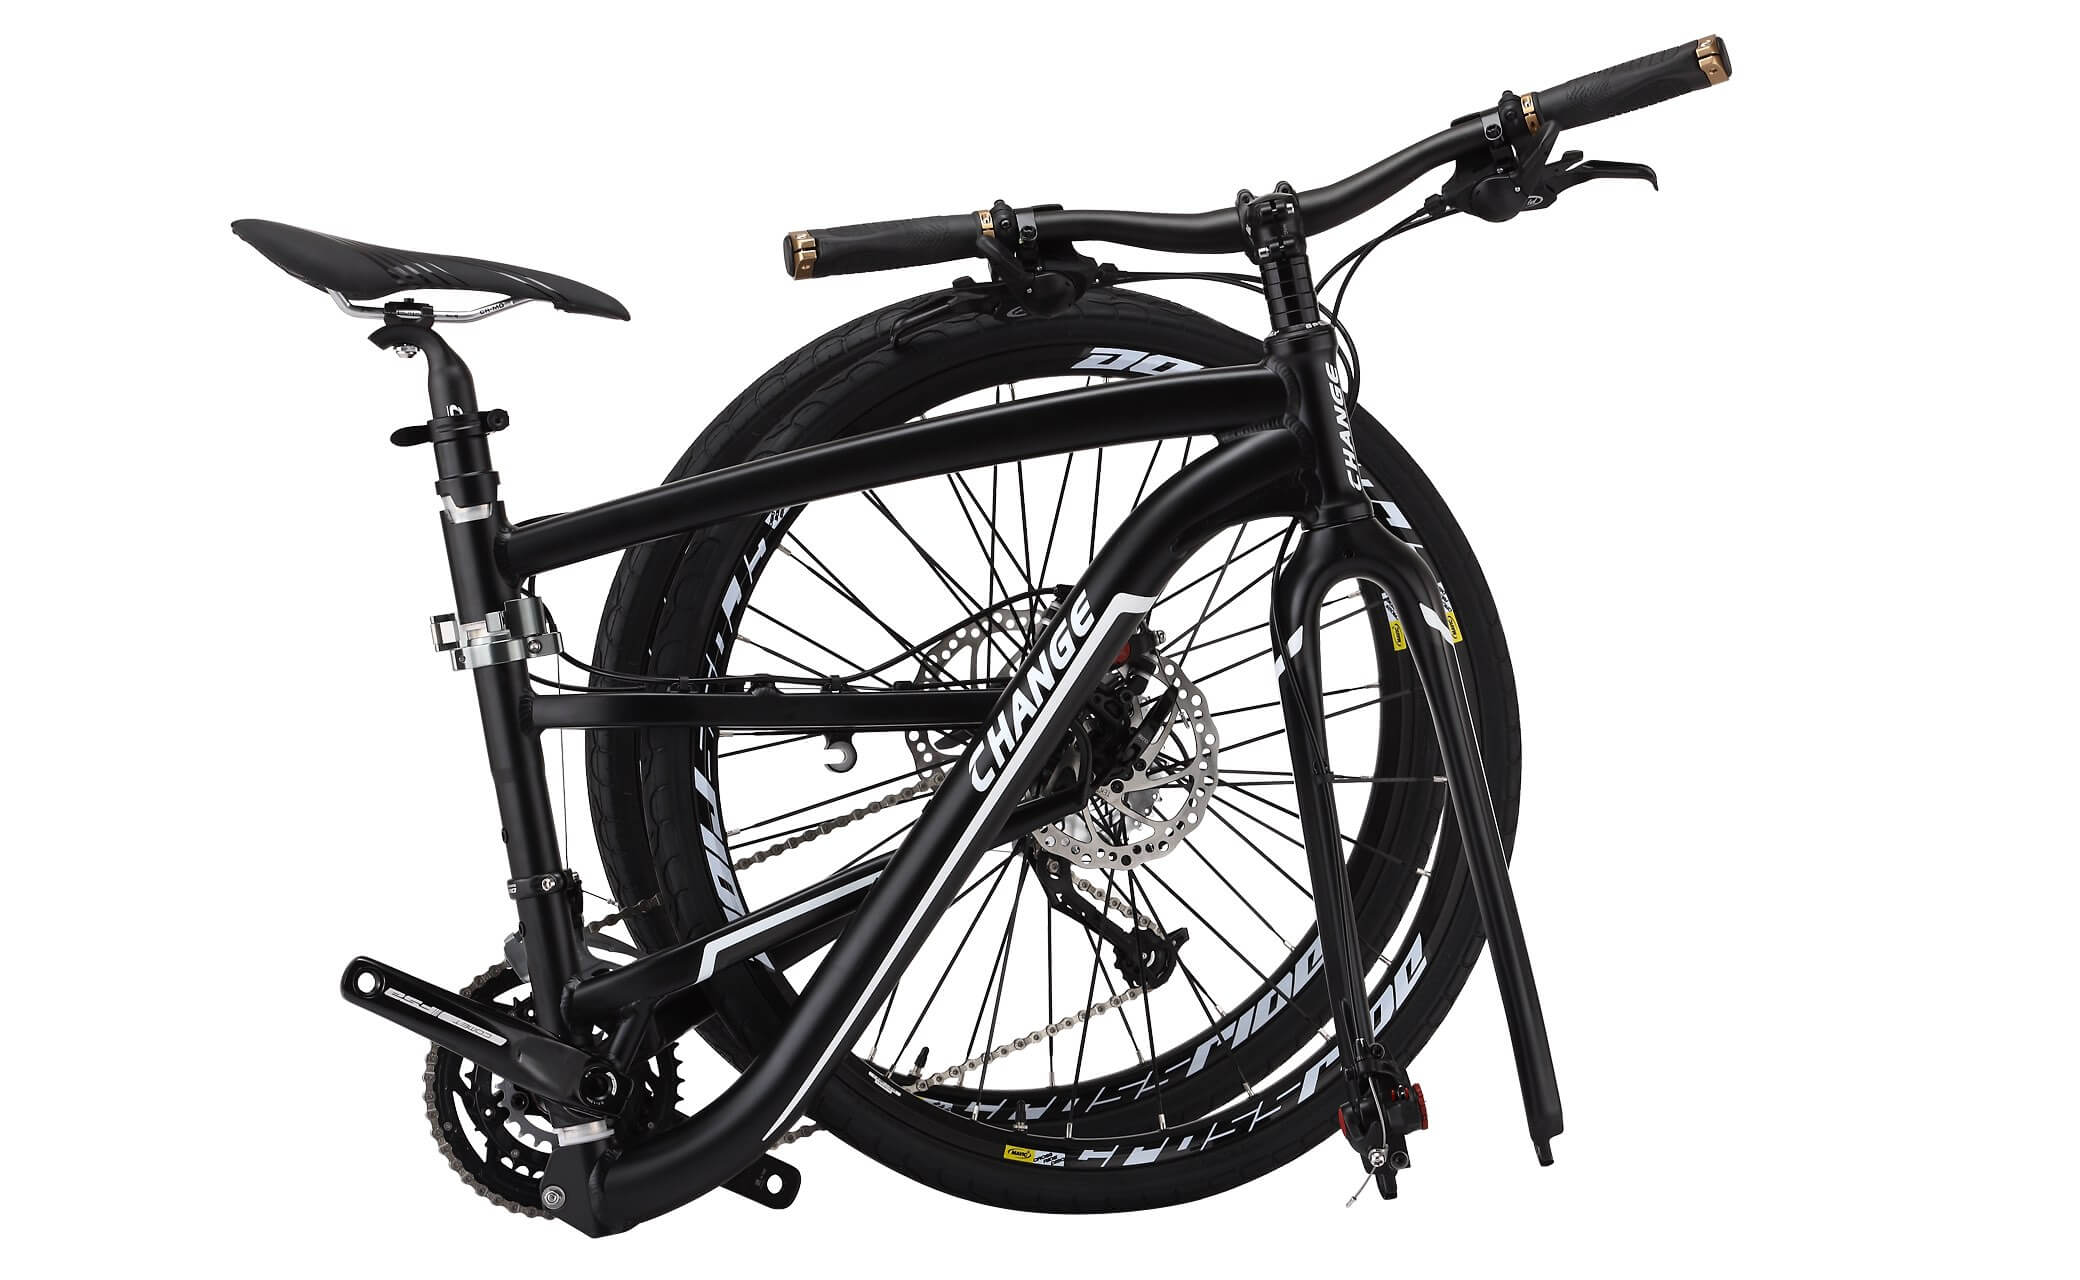 Lightweight Amp Foldable Bikes With Great Gearing Flatbike